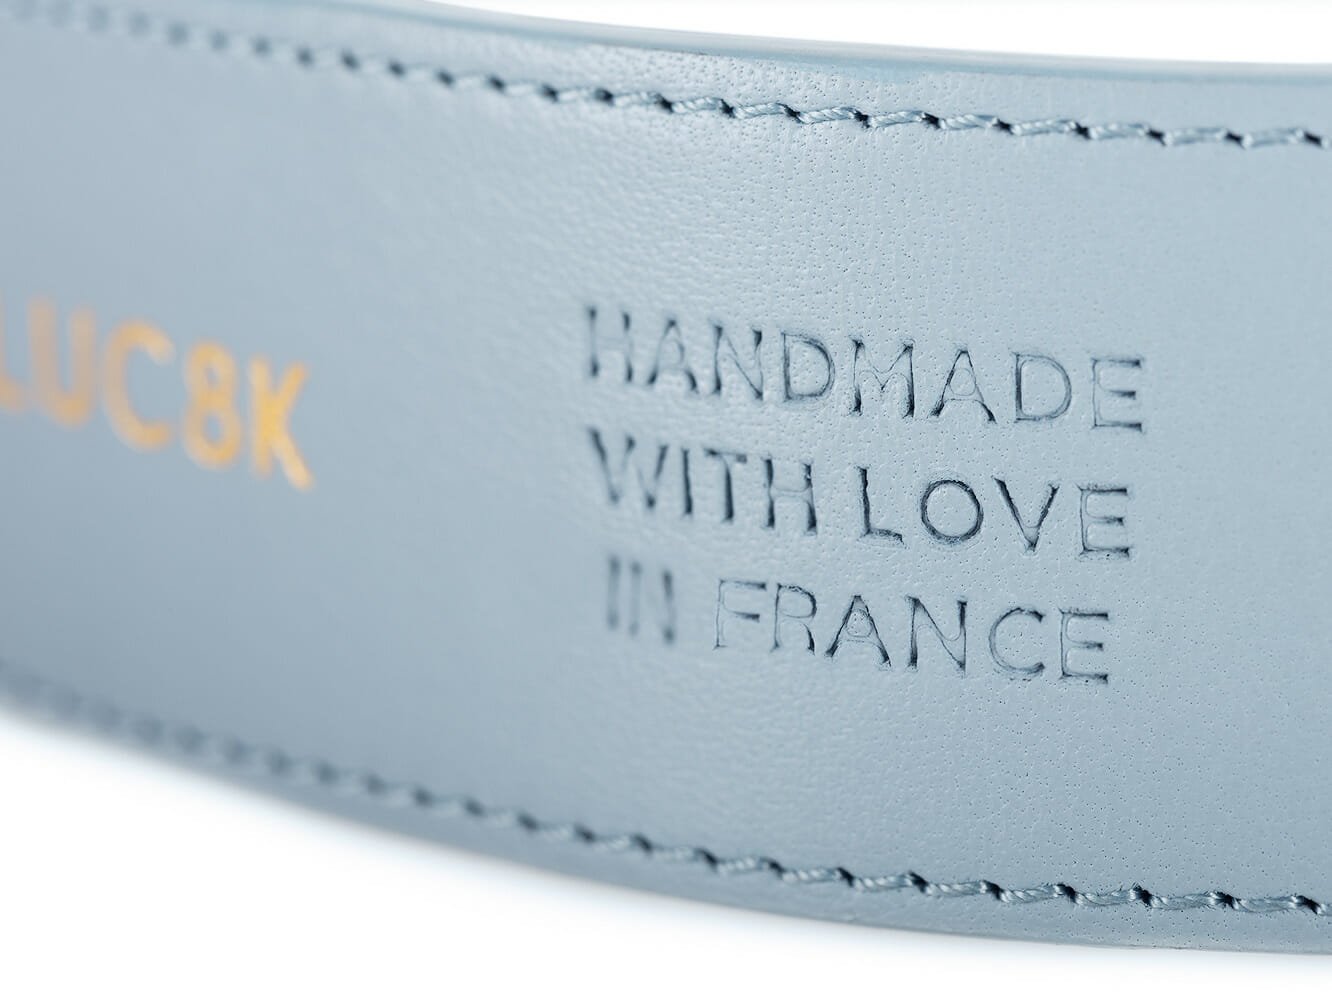 handmade with love in France embossed into a leather belt